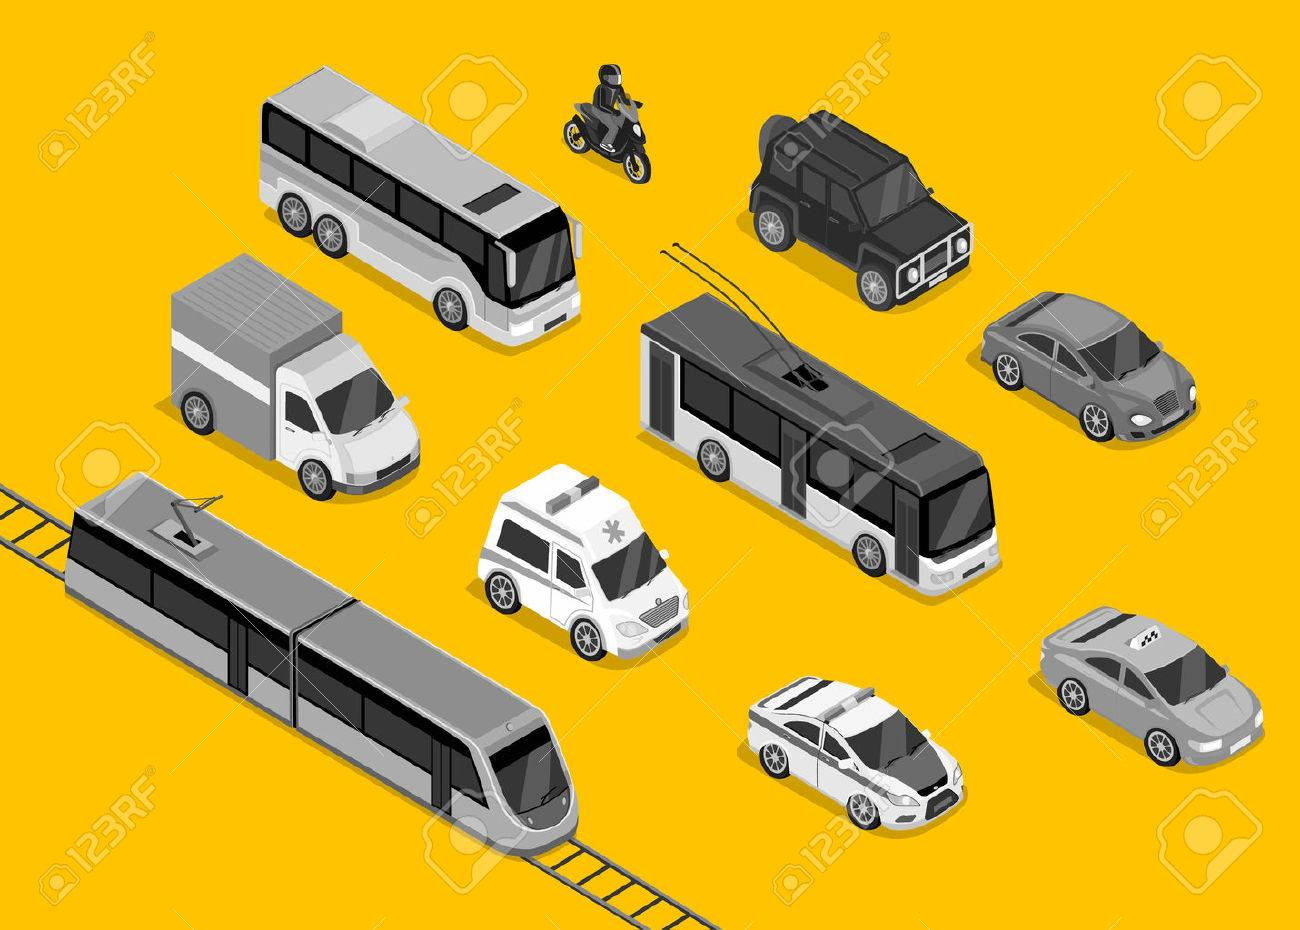 Isometric 3d transport set flat design. Car vehicle, transportation traffic, truck van, auto cargo, bus and automobile, police and motorcycle illustration Stock Vector - 51810364